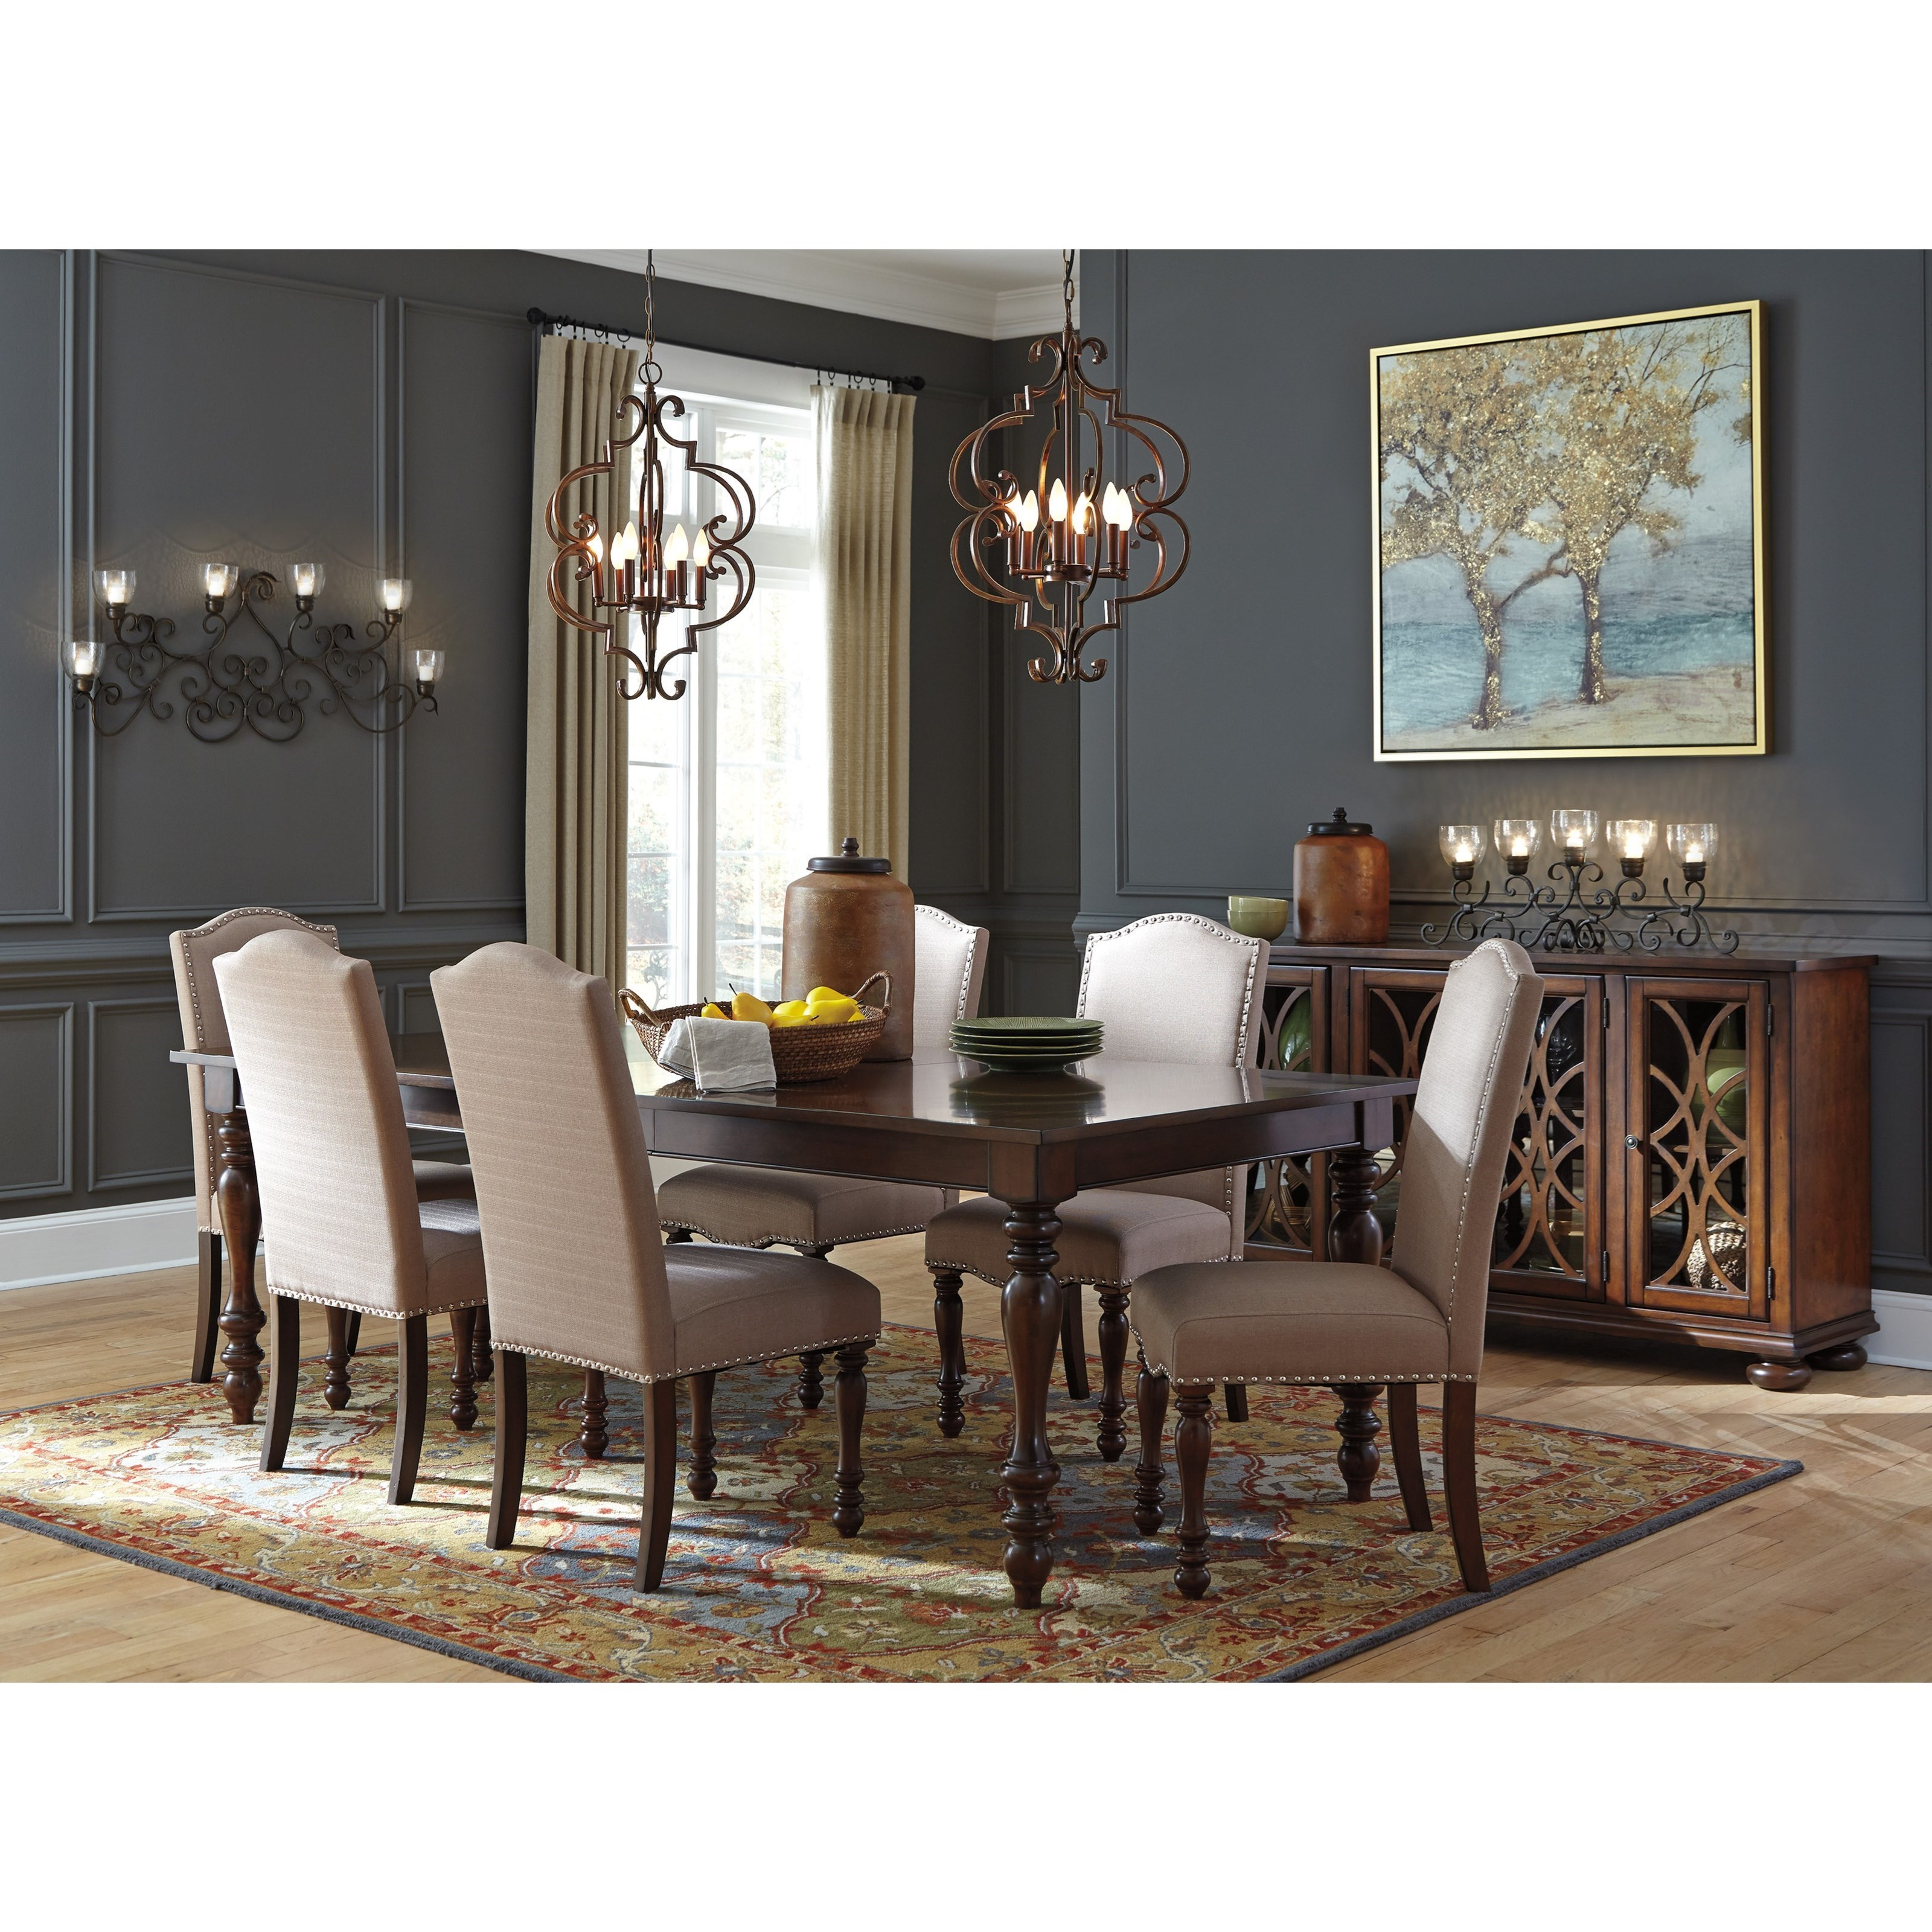 Elegant Baxenburg Formal Dining Room Group By Signature Design By Ashley